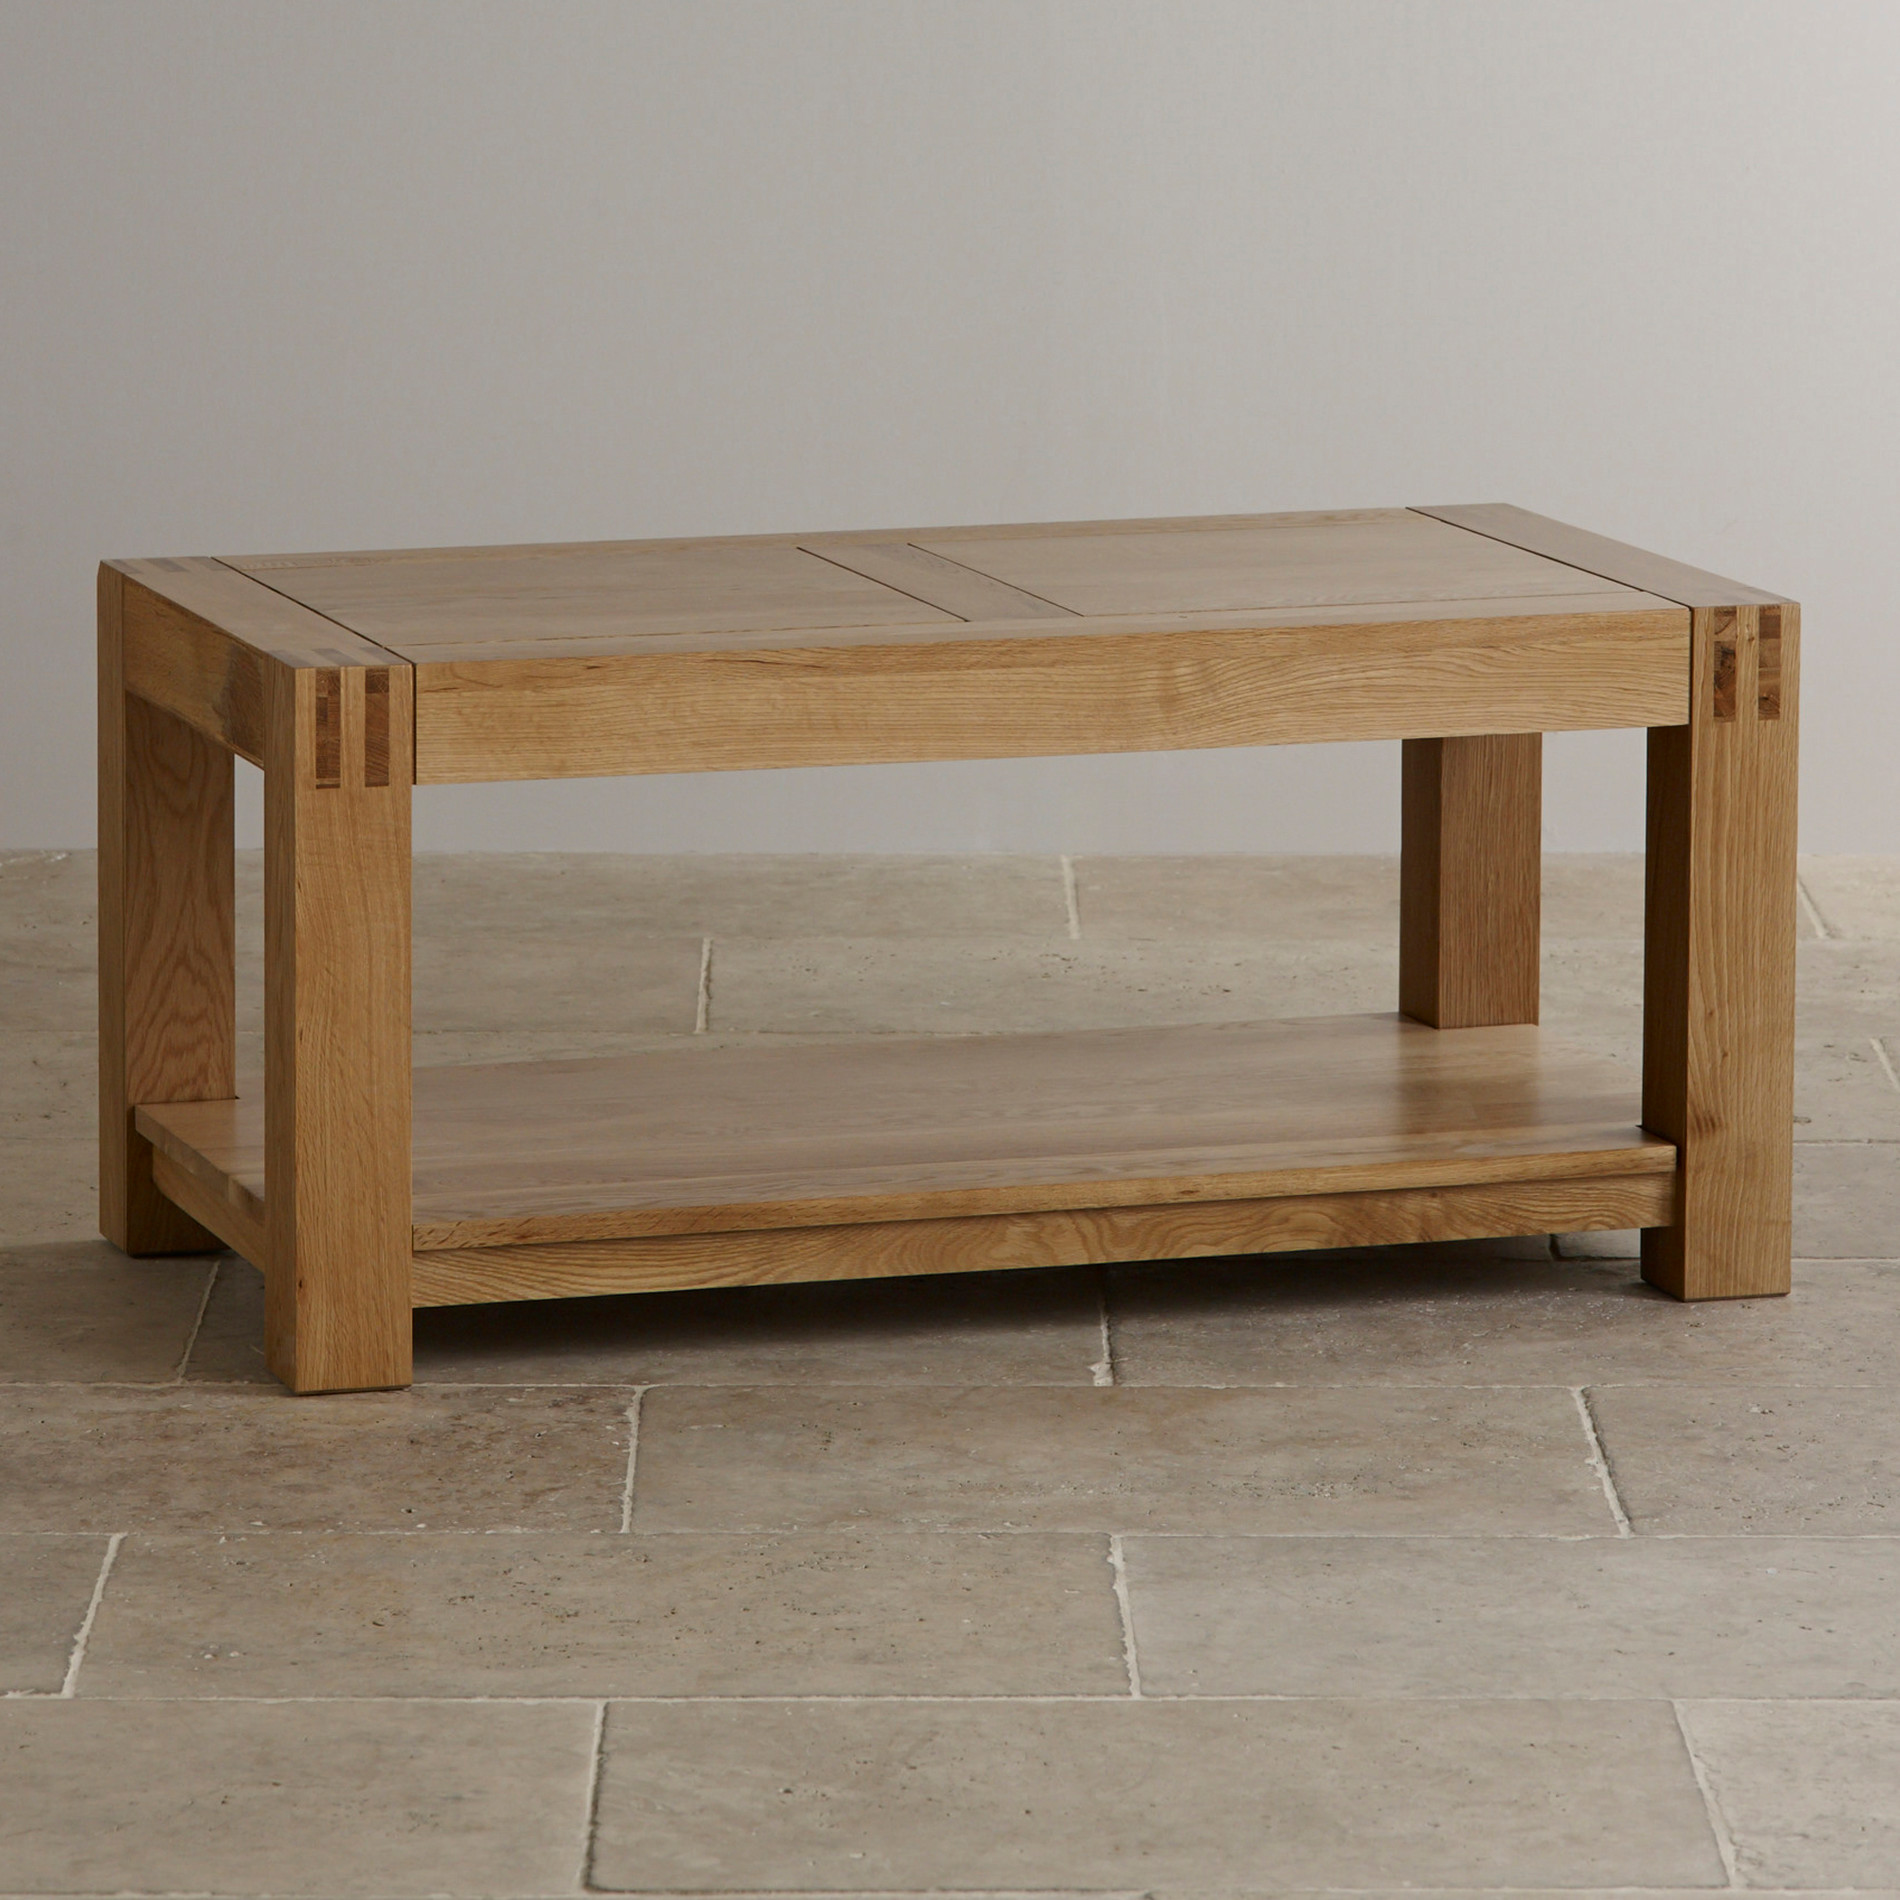 Oak Furniture Living Room Coffee Tables Living Room Furniture Oak Furniture Land